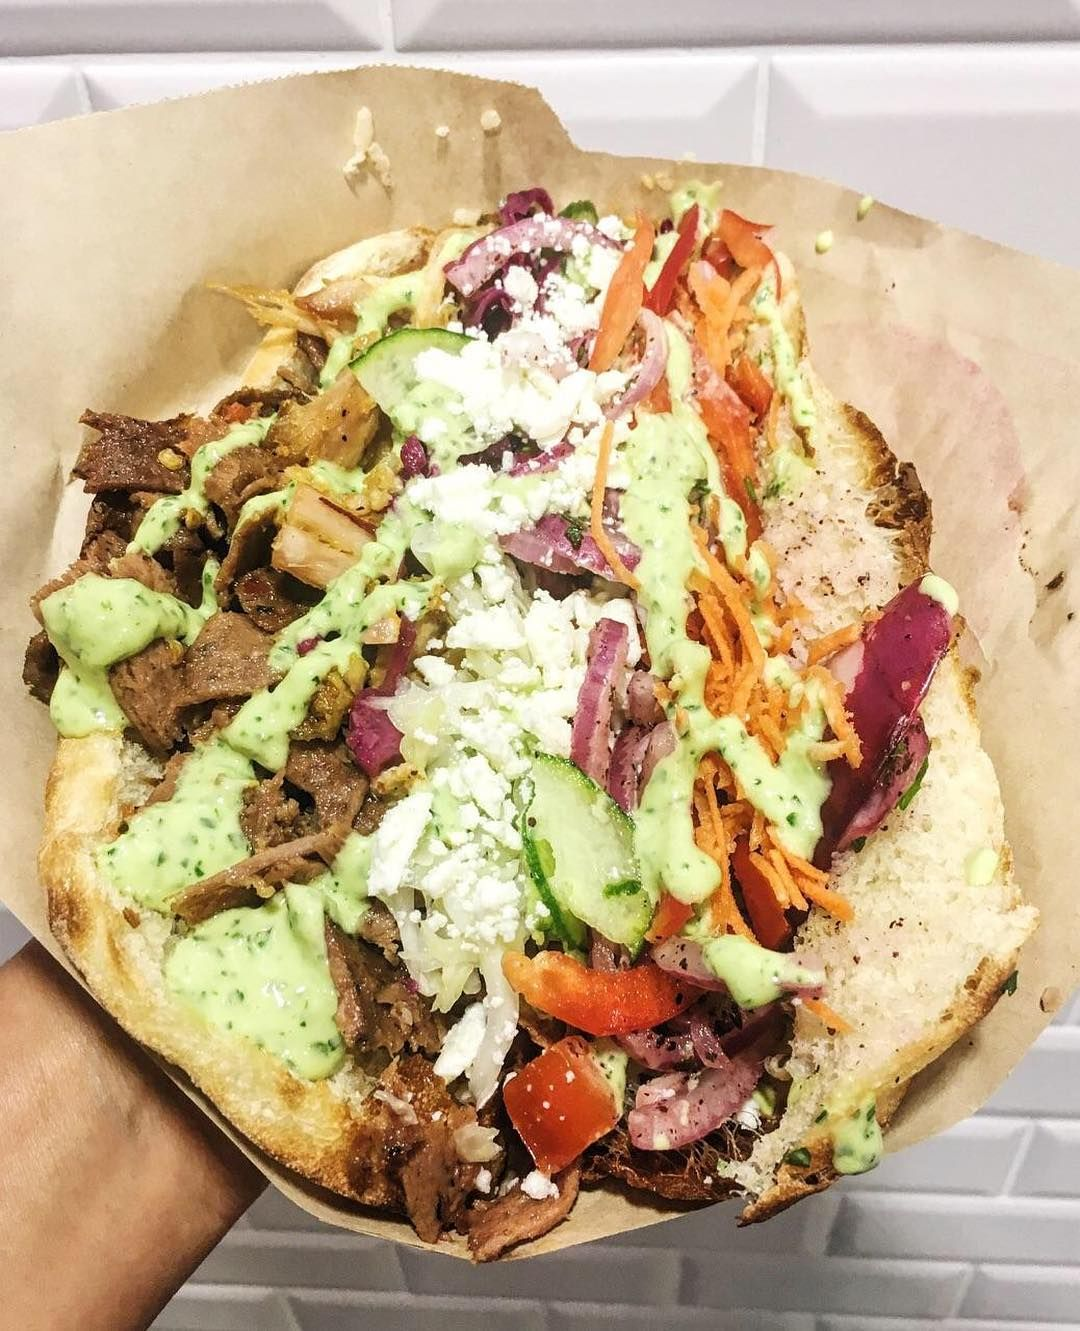 Beef And Chicken Doner Kabob With All The Fixin S And Extra Tzatziki Sauce Kebab Recipes Chicken Doner Kebab Recipe Doner Kebabs